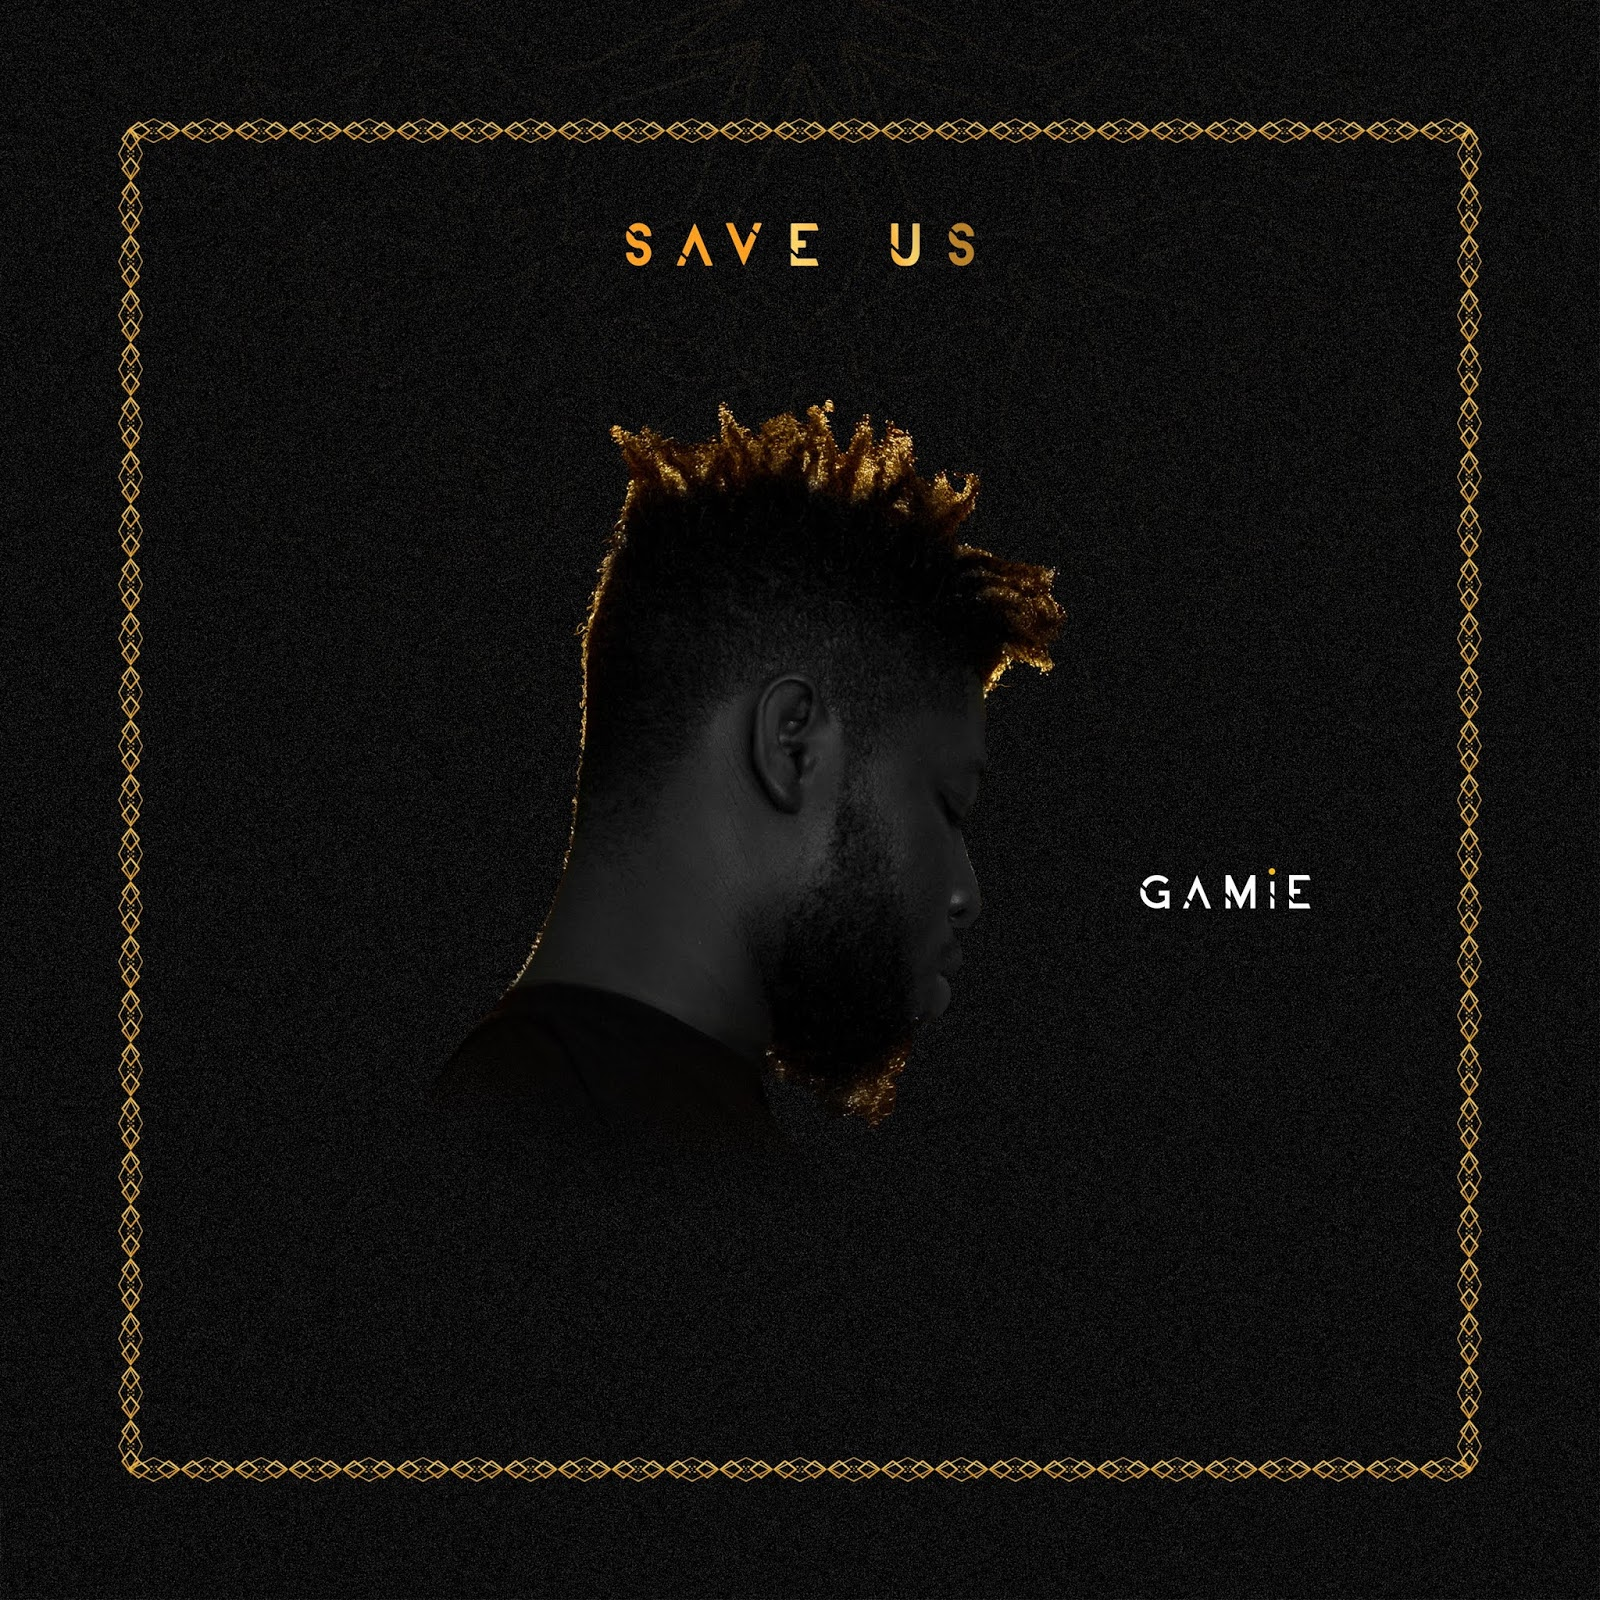 Gamie - Save Us Mp3 Download